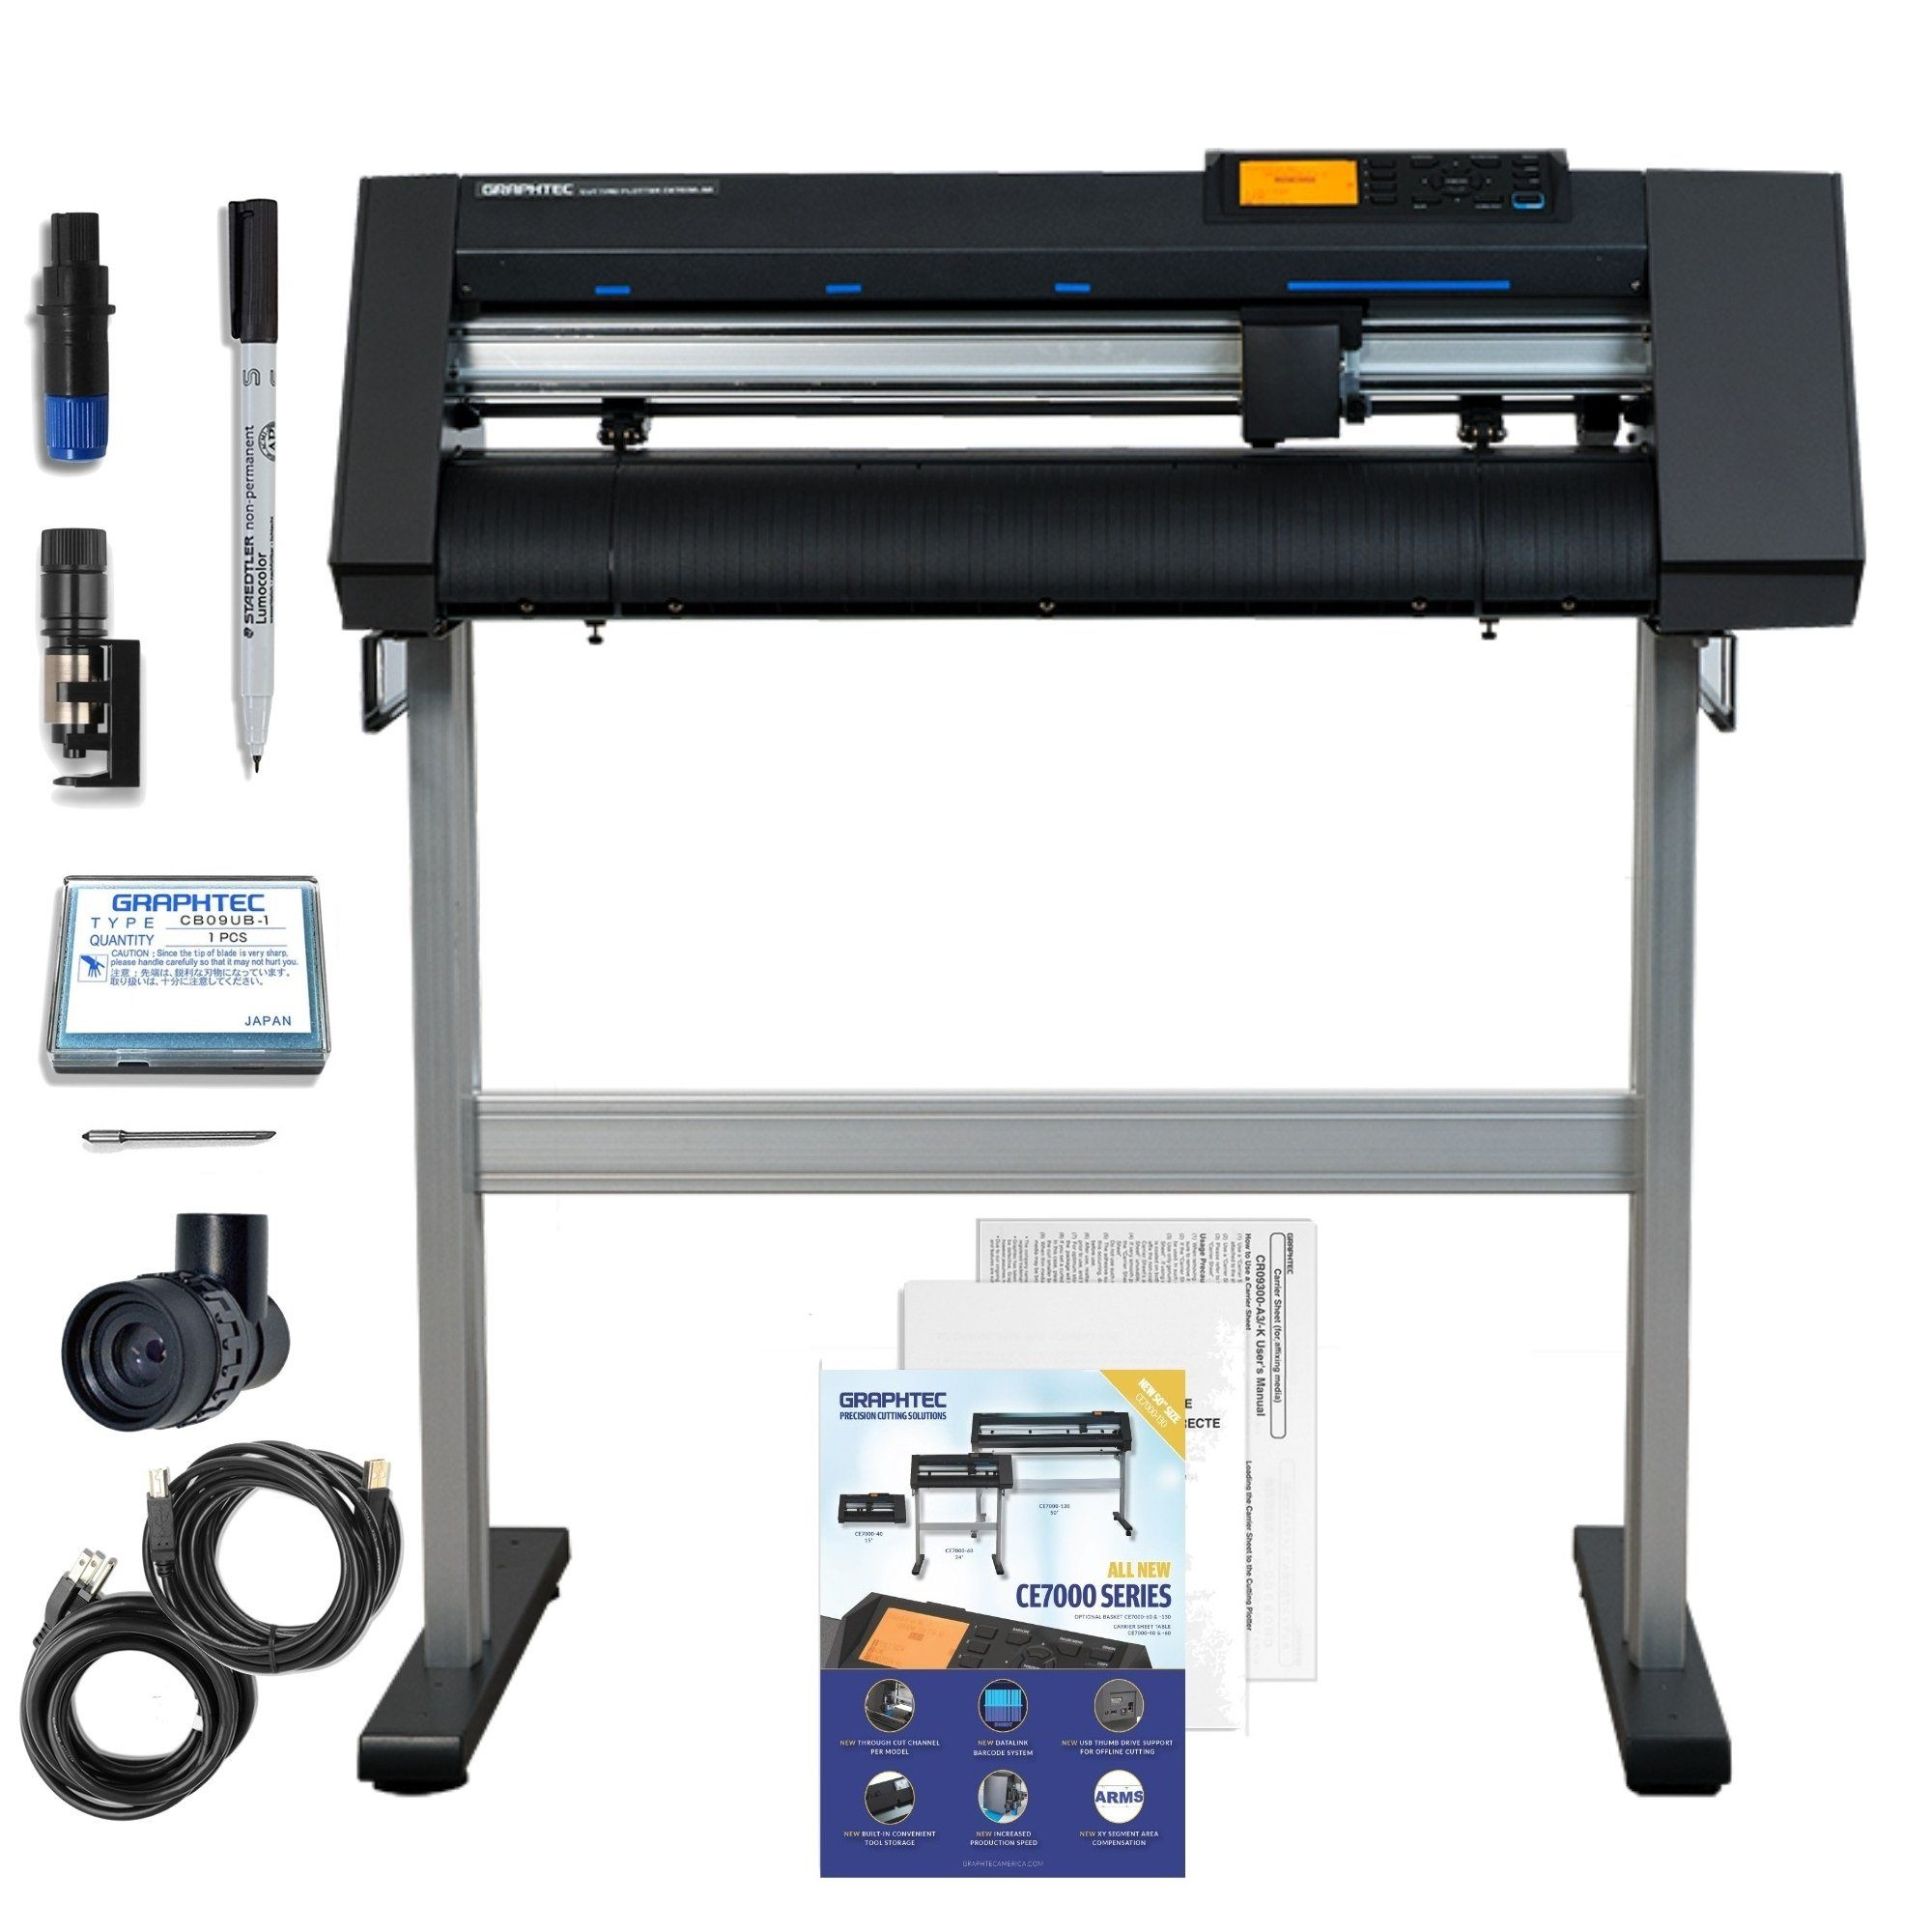 Graphtec CE7000-60 PLUS Cutting Plotter Review